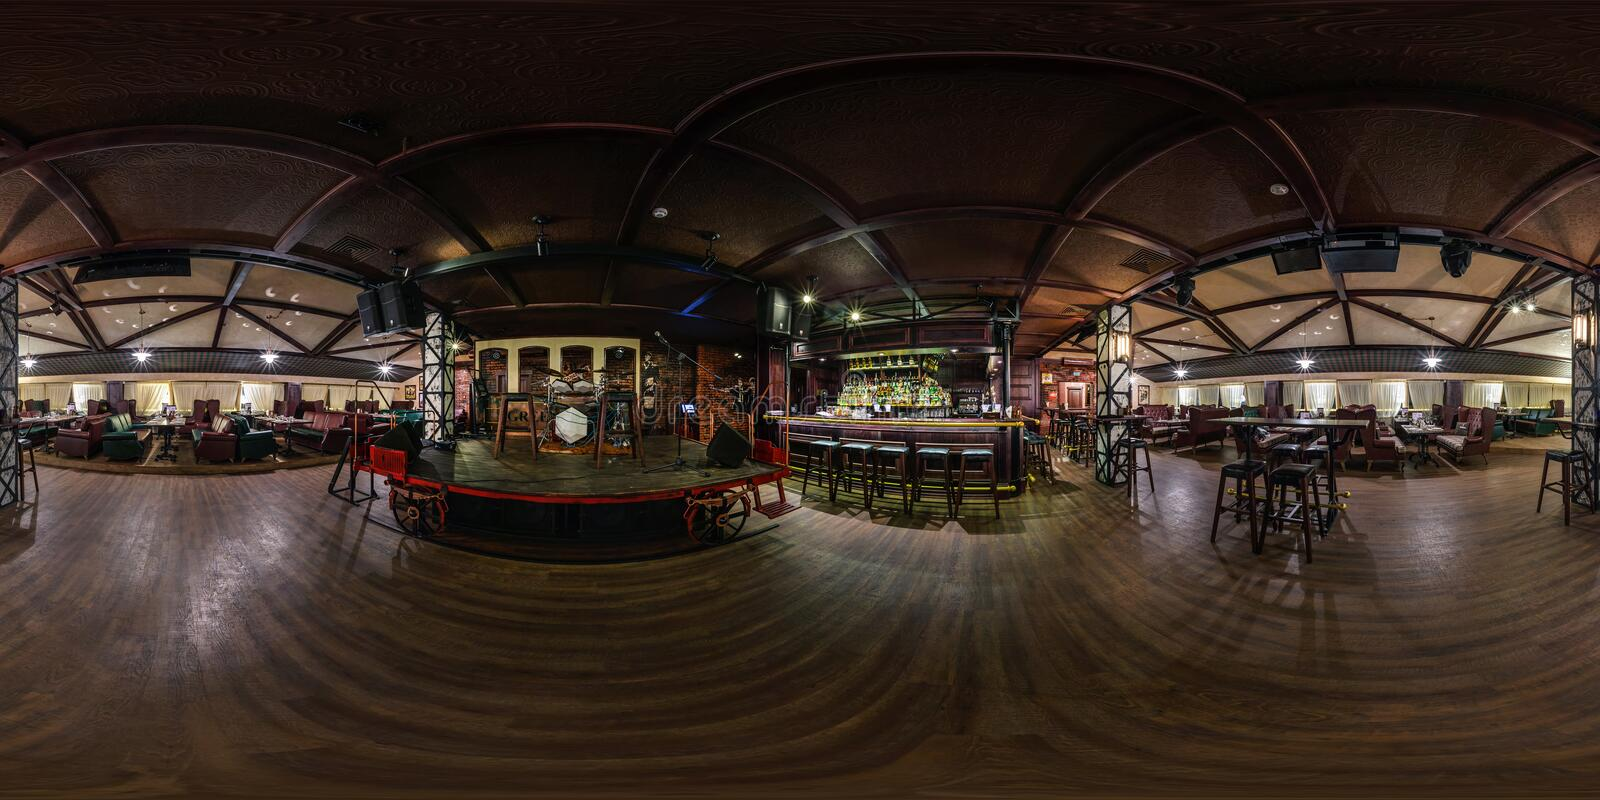 GRODNO, BELARUS - MAY, 2018: Full spherical seamless panorama 360 degrees in interior chester vintage restaurant nightclub bar stock image